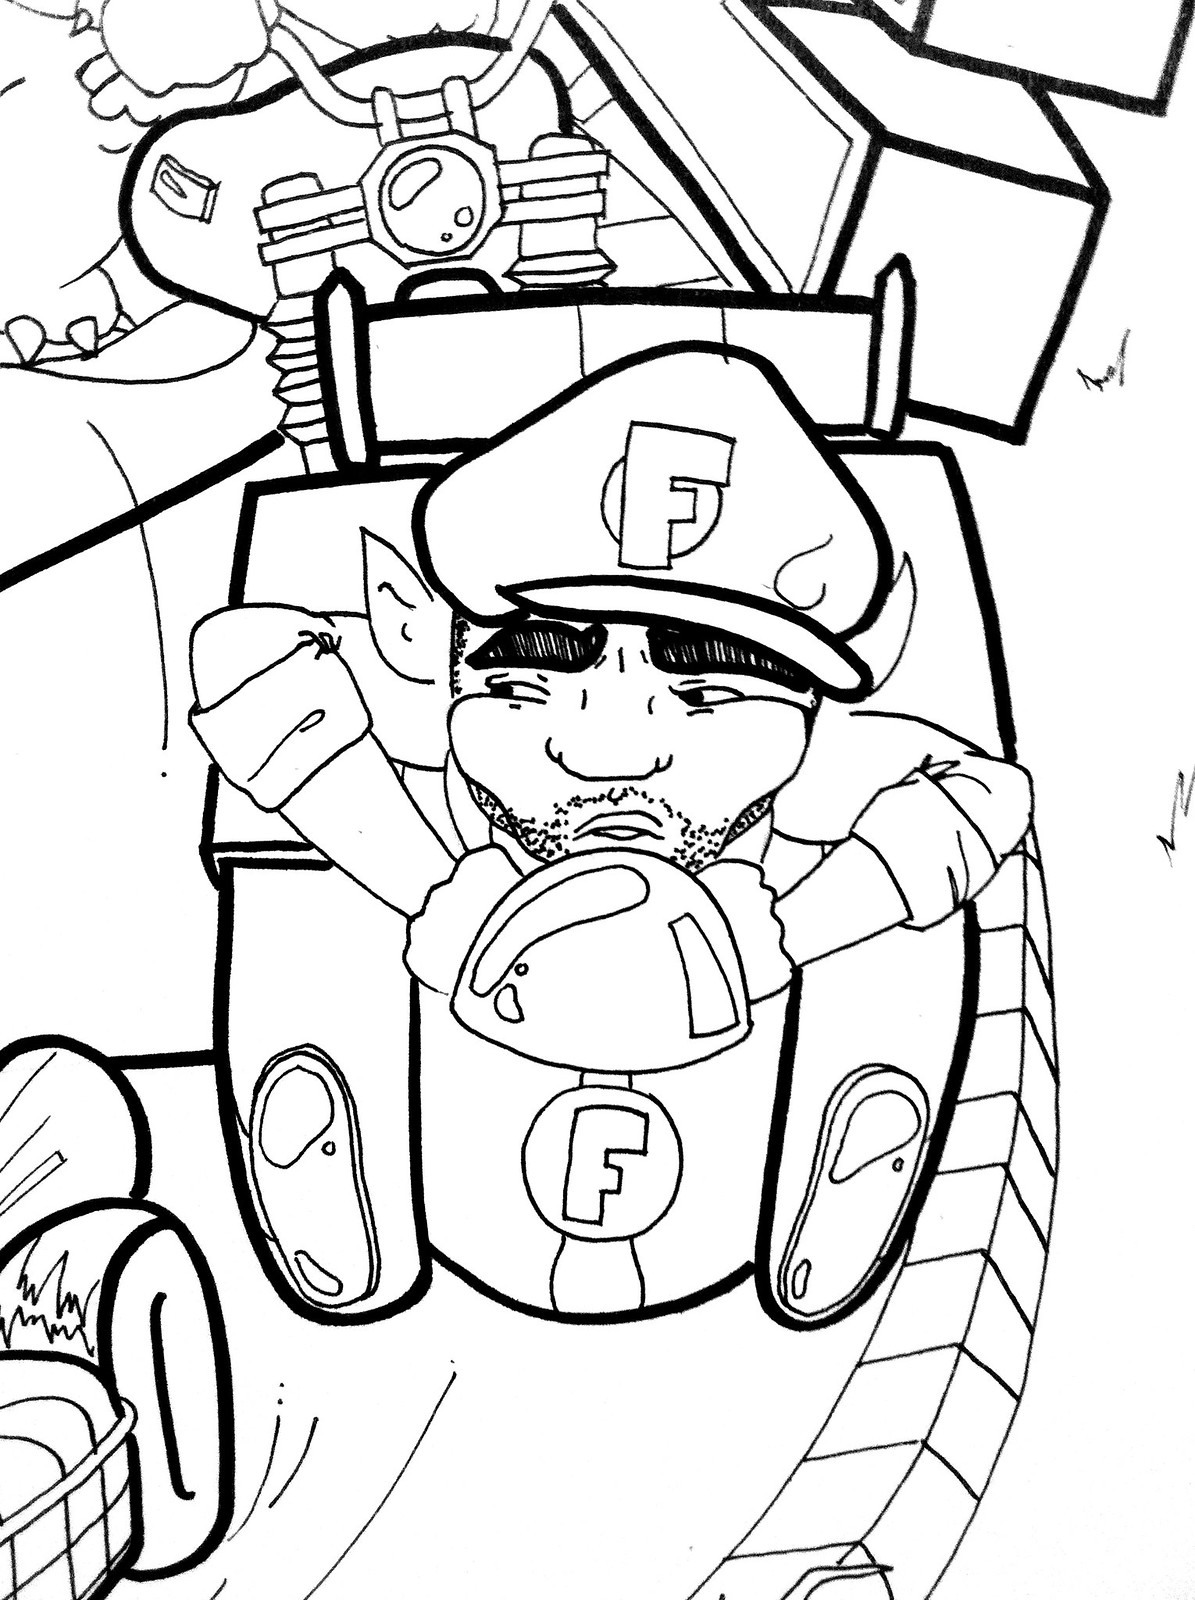 wario coloring pages - photo#36